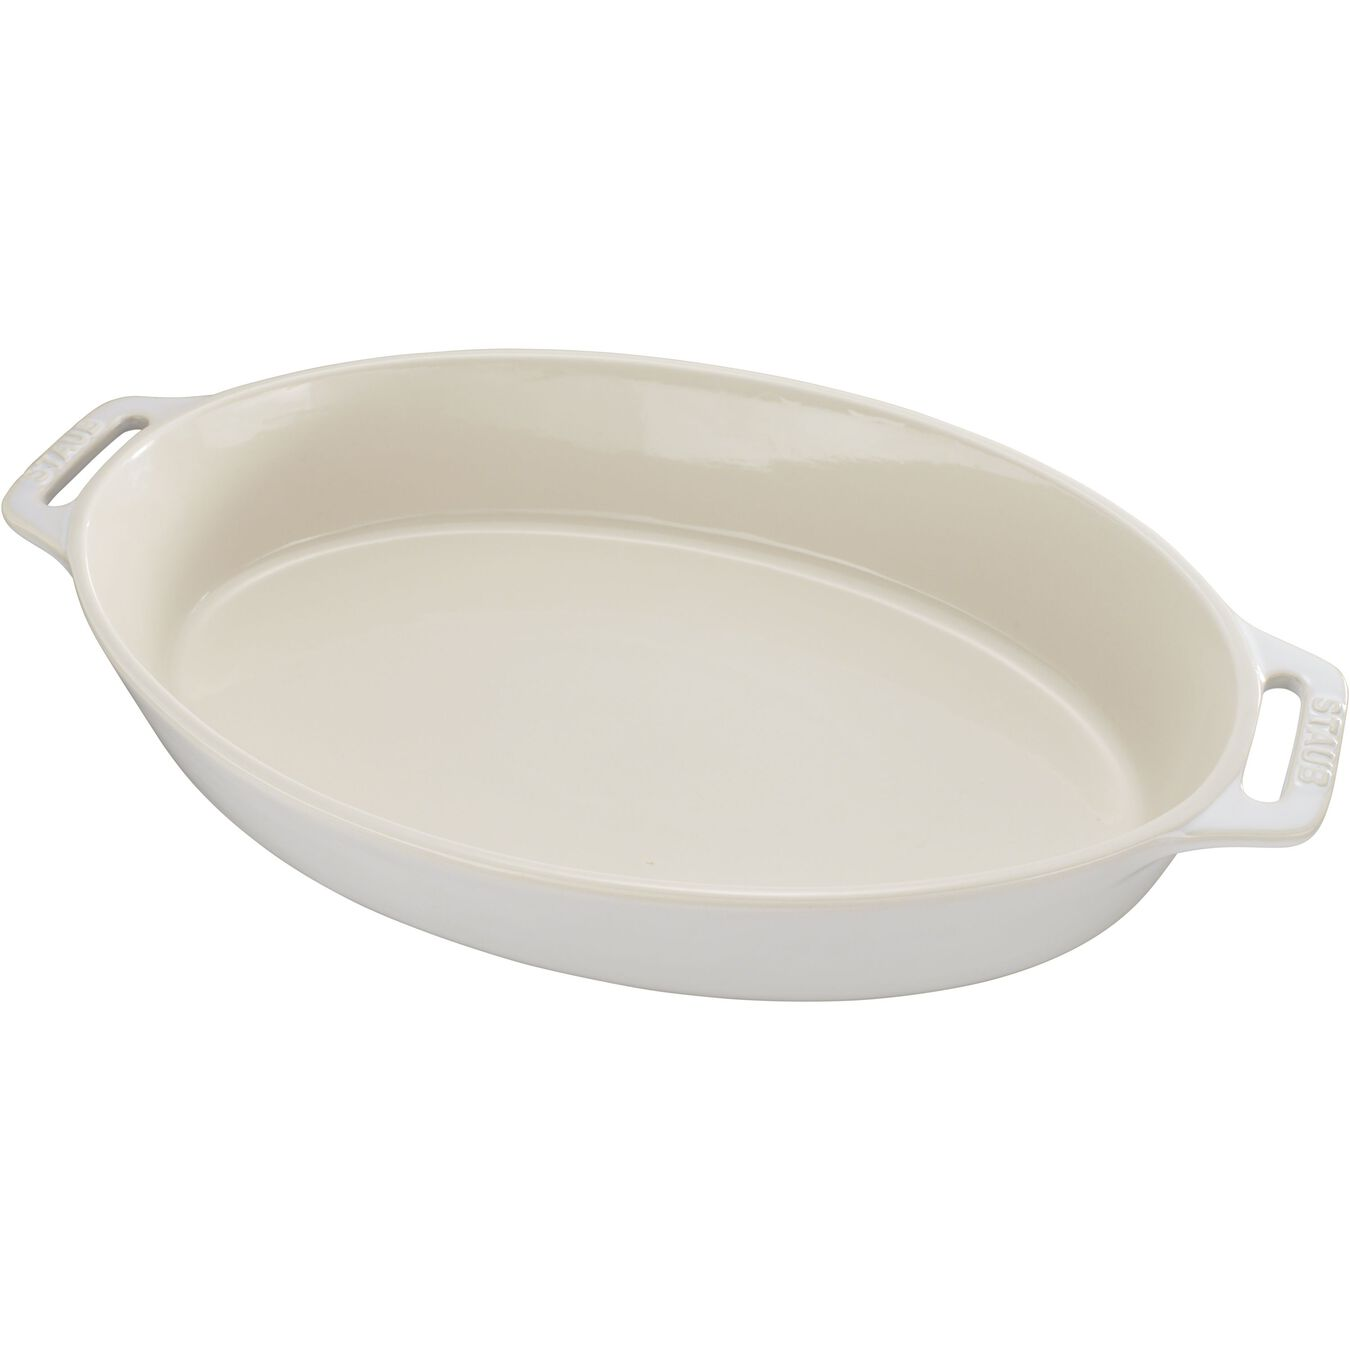 14.5-inch, oval, Oven dish, ivory-white,,large 1